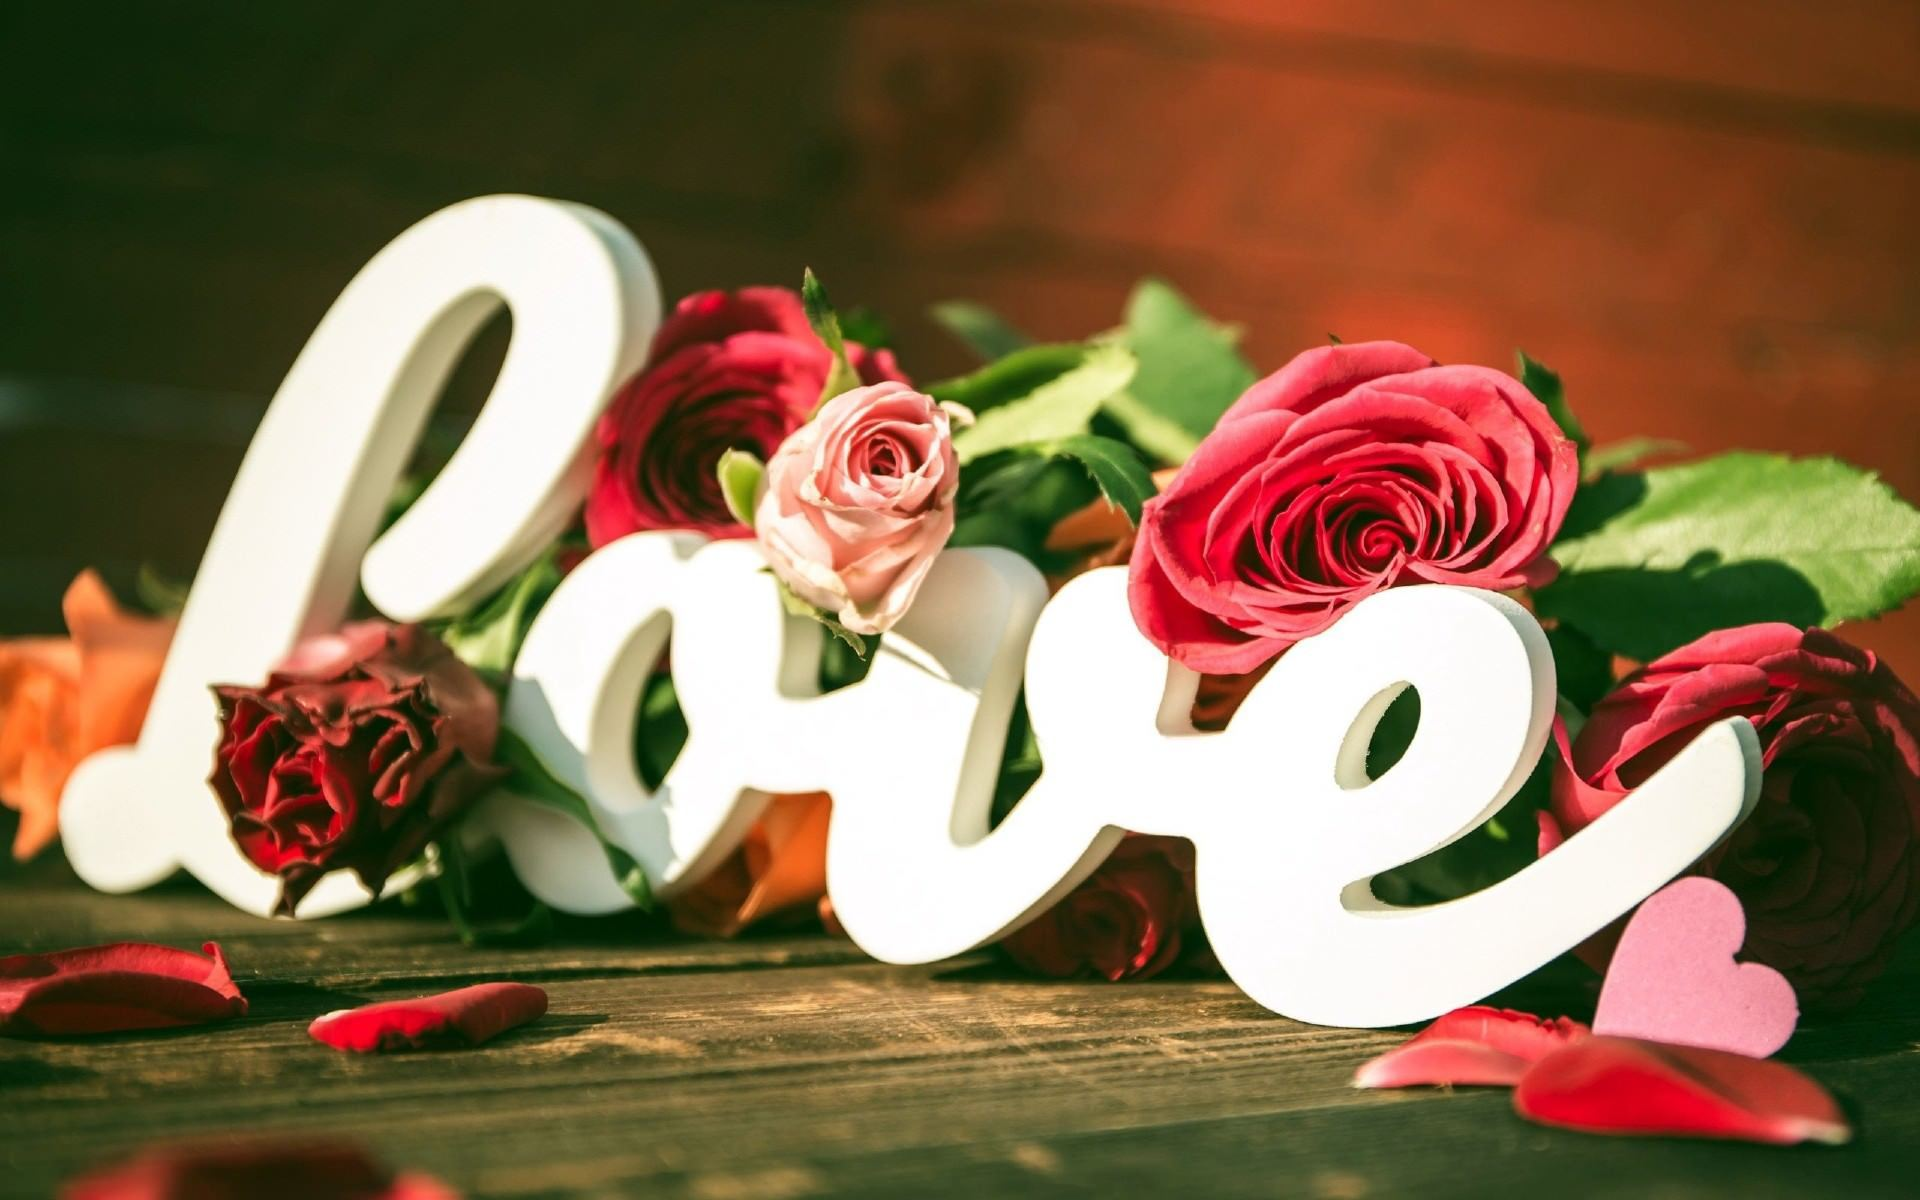 Love Flower Wallpaper For Desktop